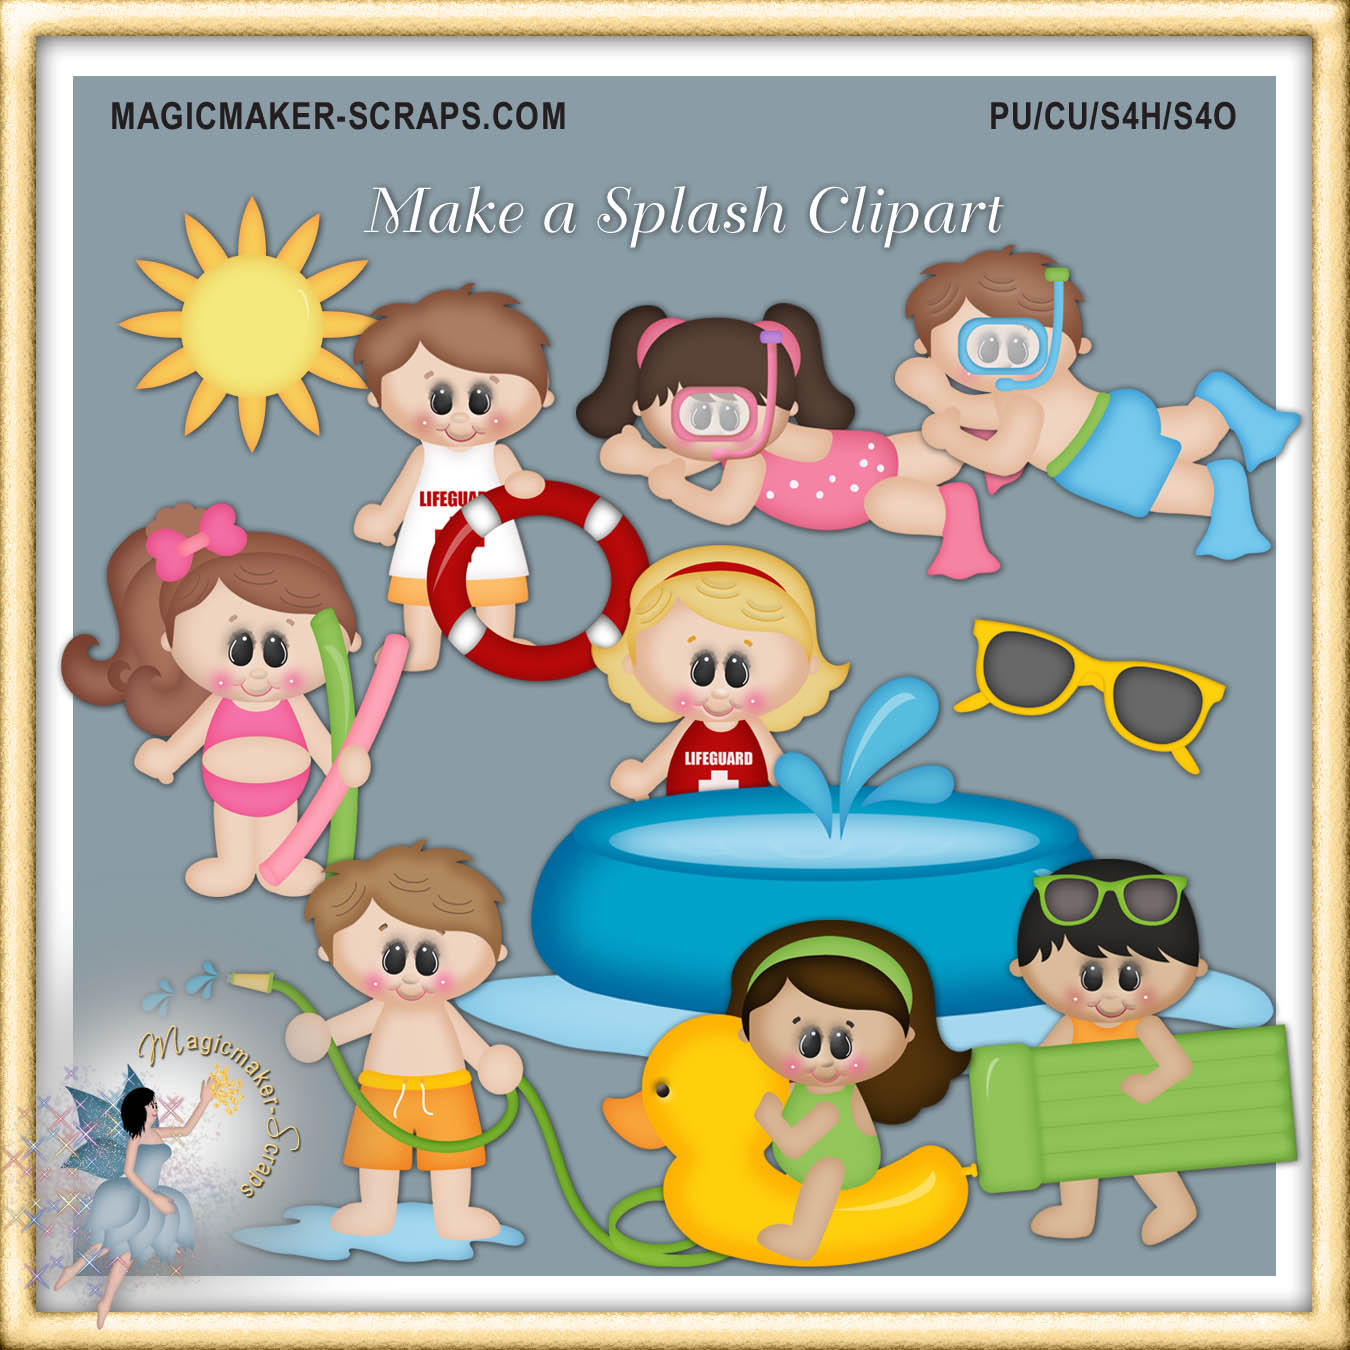 Dog Days Of Summer Clipart    1 00   Magicmaker Scraps Shoppe